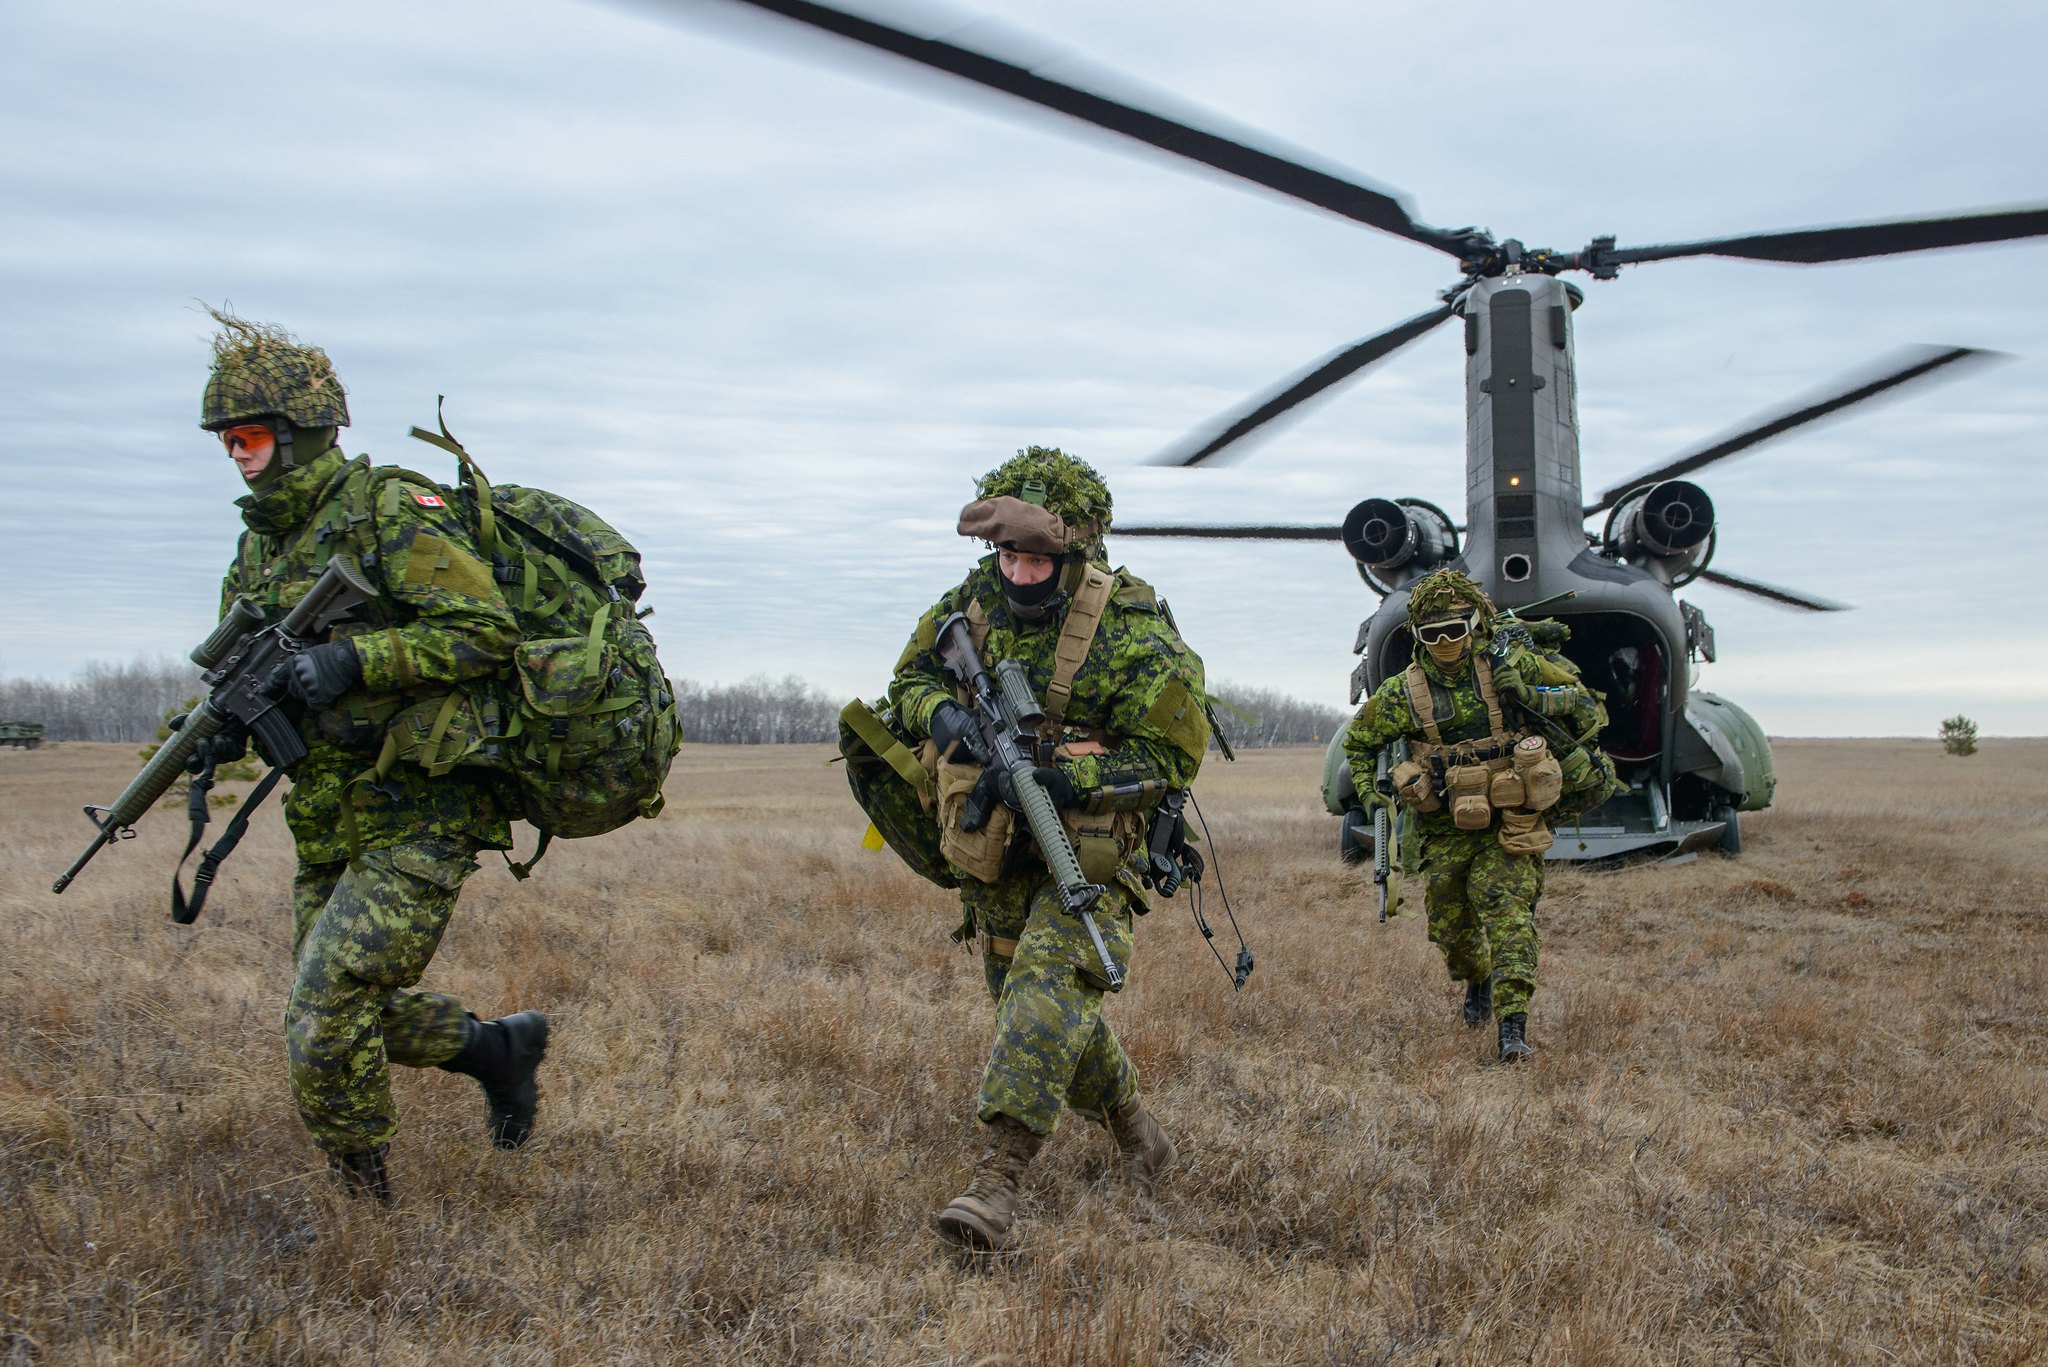 Members of 1st Regiment Royal Canadian Horse Artillery disembark a CH-147F Chinook helicopter from 450 Tactical Helicopter Squadron as part of Exercise CHINOOK GUNNER at CFB Shilo, Manitoba